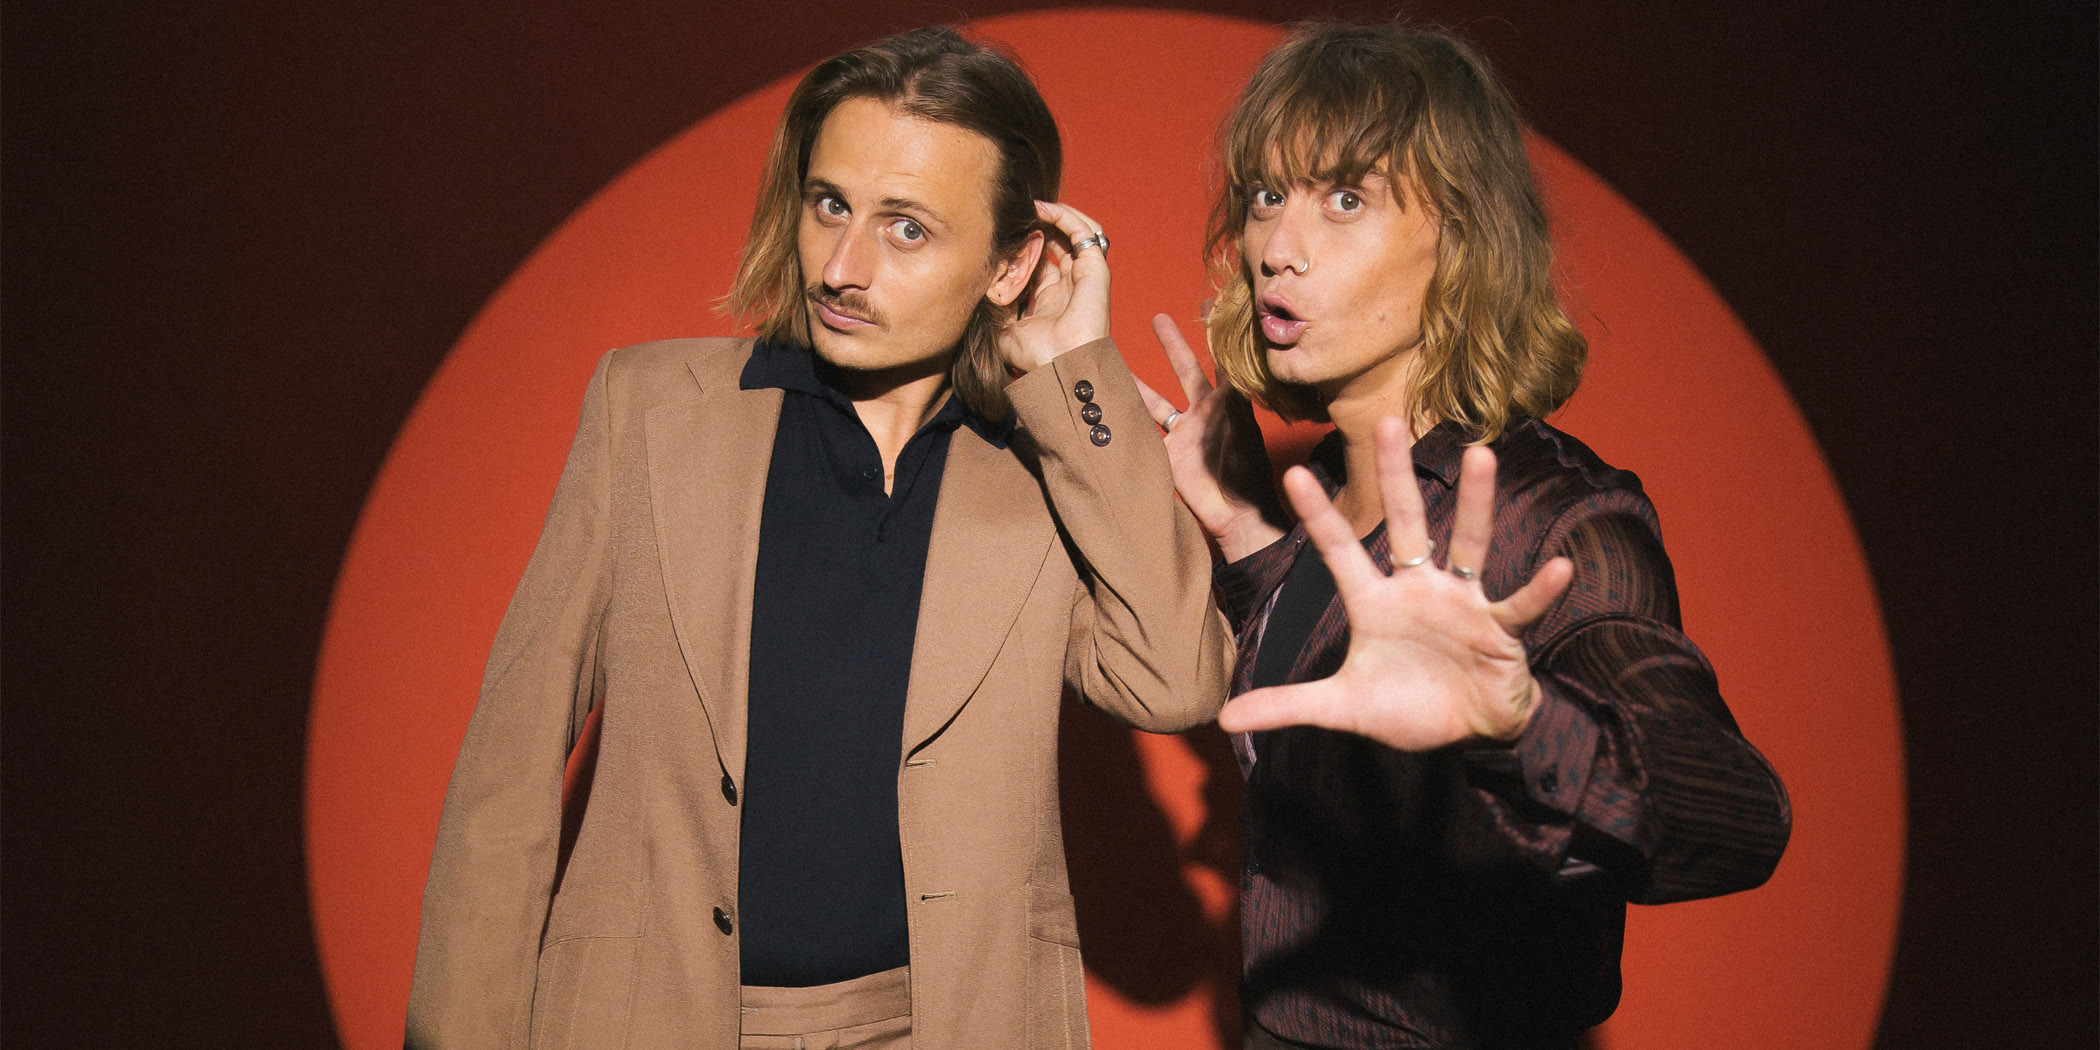 Image of Lime Cordiale